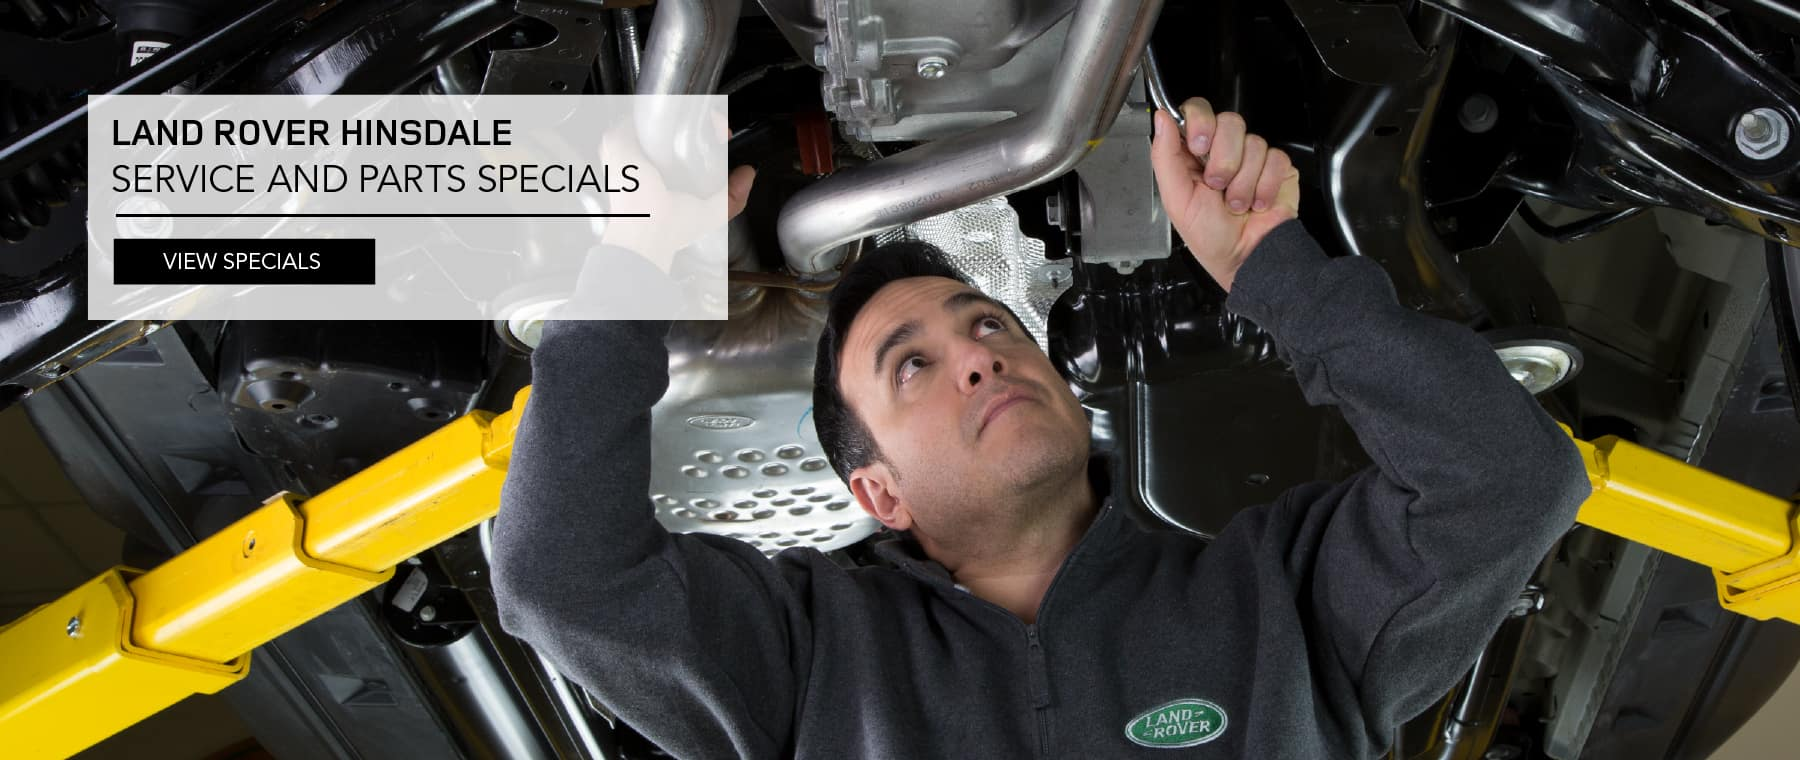 LAND ROVER HINSDALE SERVICE AND PARTS SPECIALS. VIEW SPECAILS. SERVICE TECHNICIAN PERFORMING MAINTENANCE UNDERNEATH A CAR.